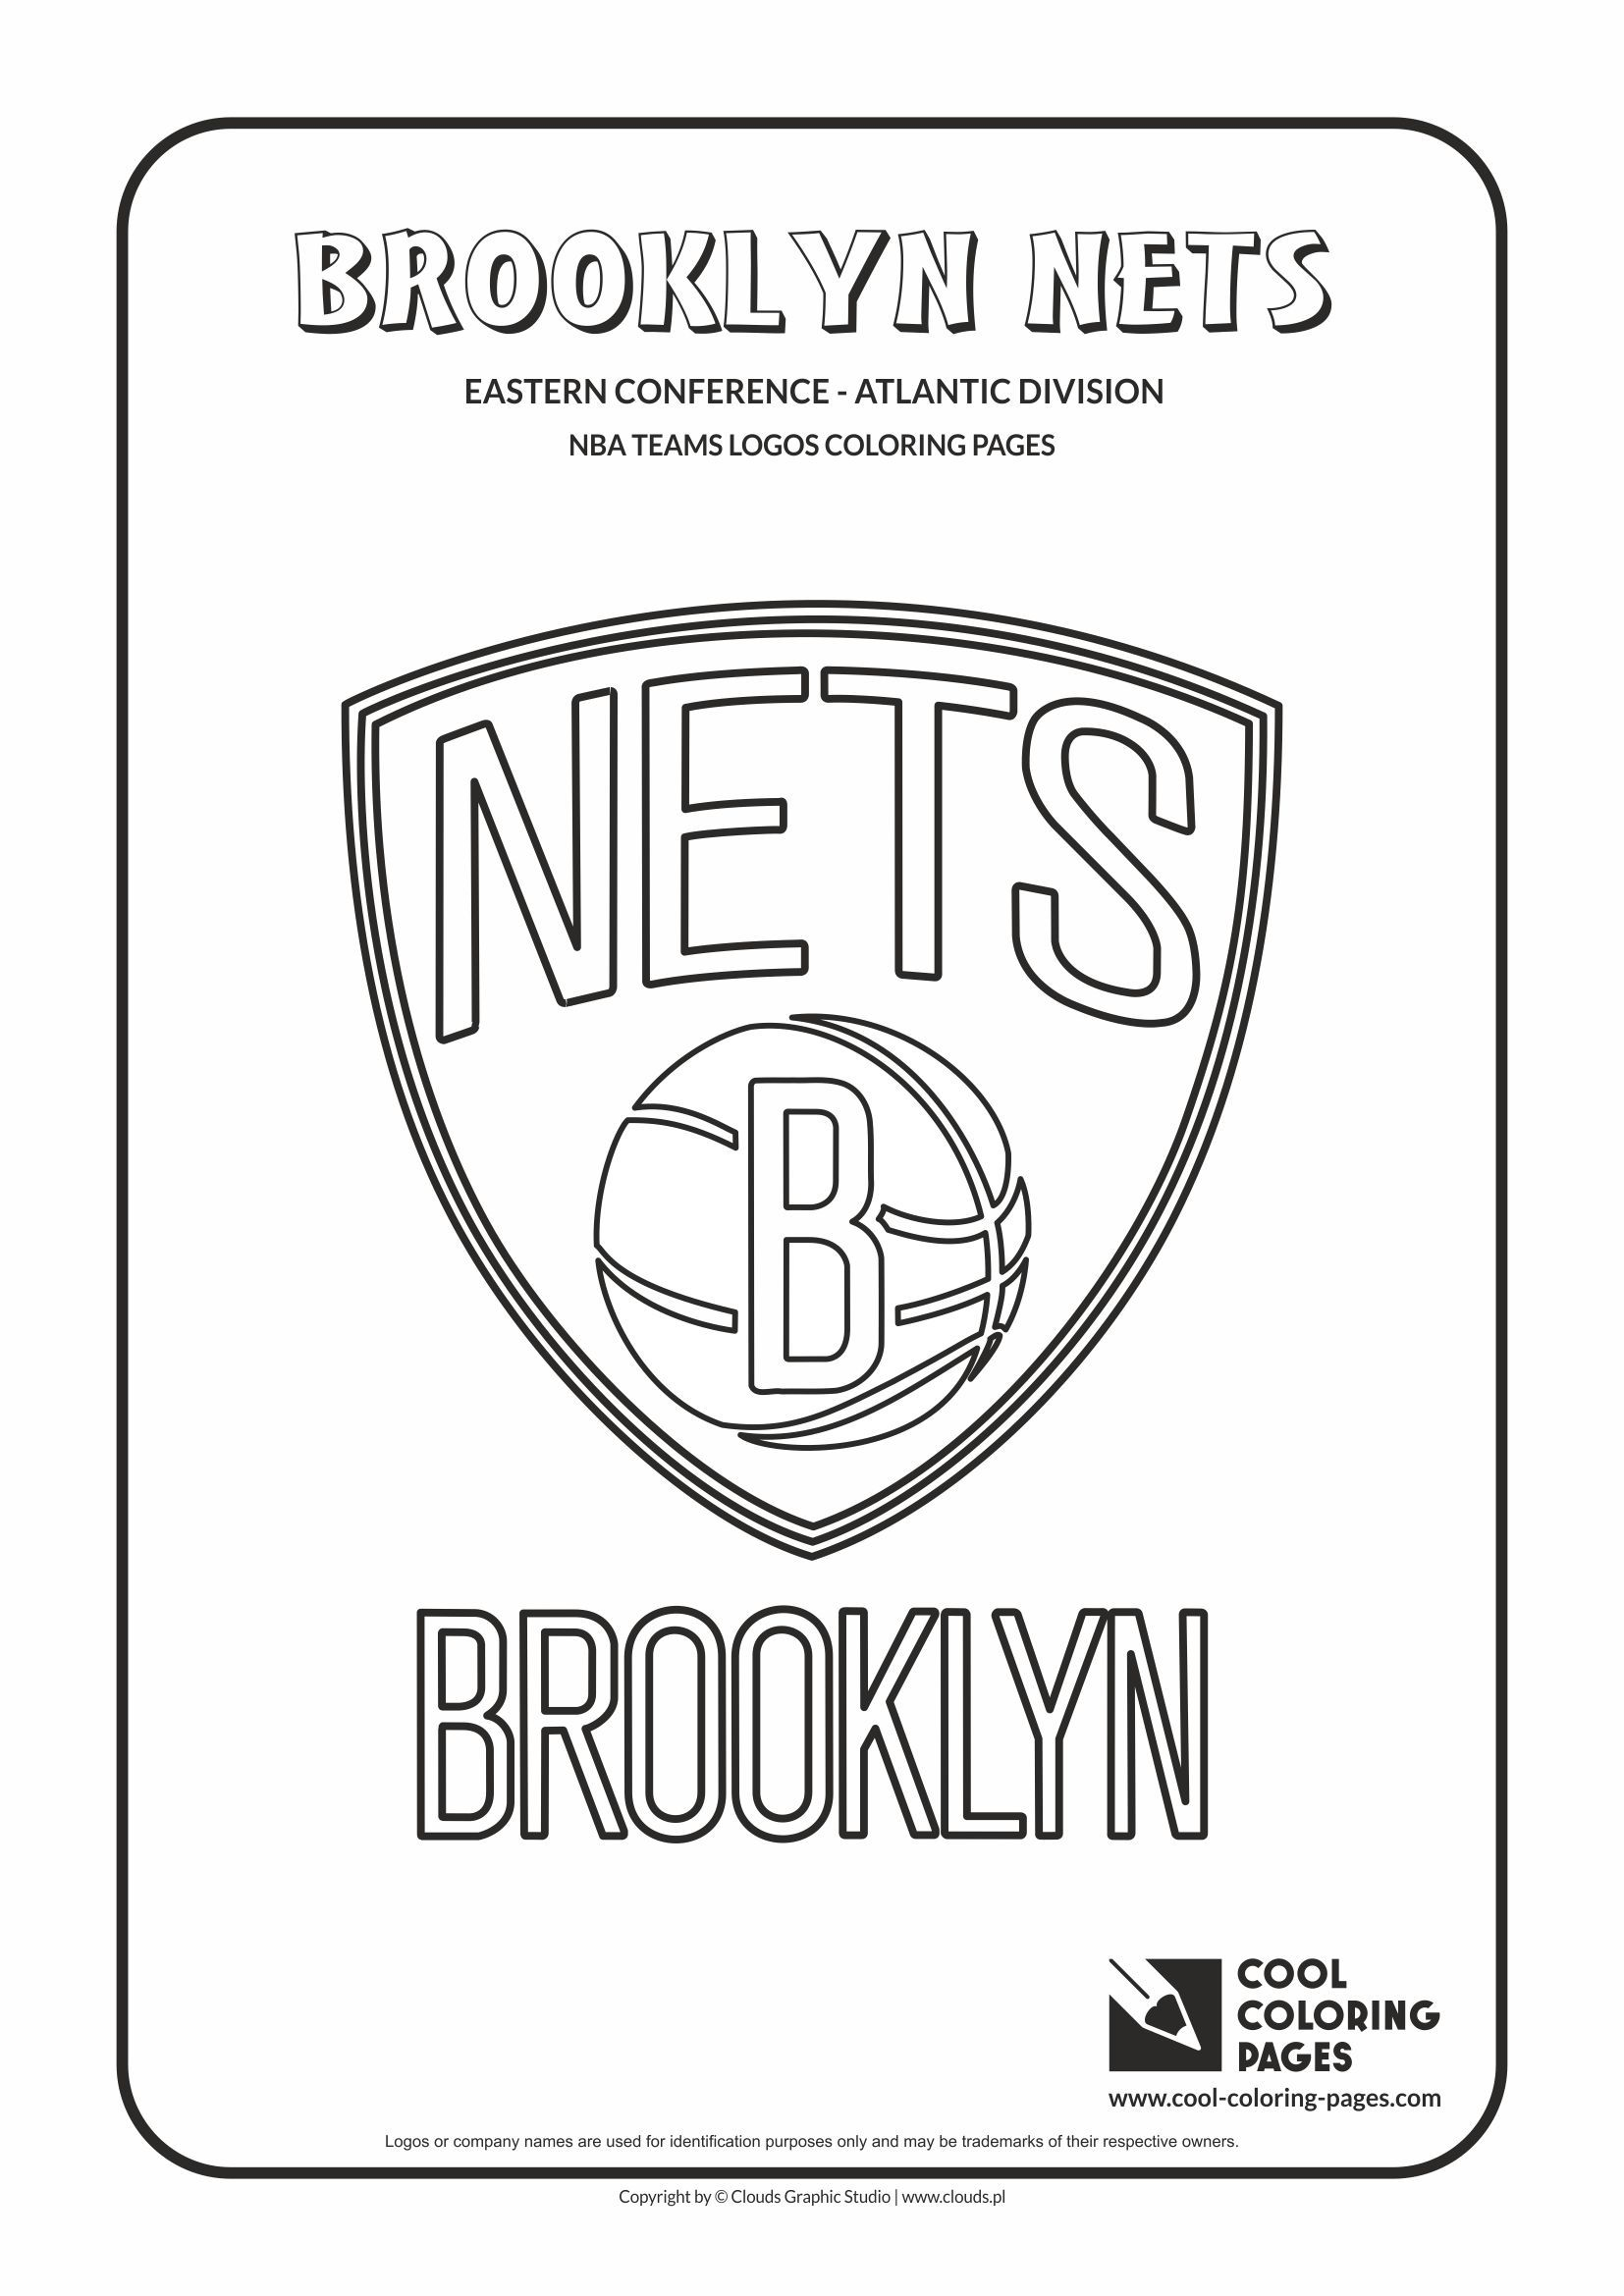 nba logos coloring pages - cool coloring pages nba teams logos brooklyn nets logo